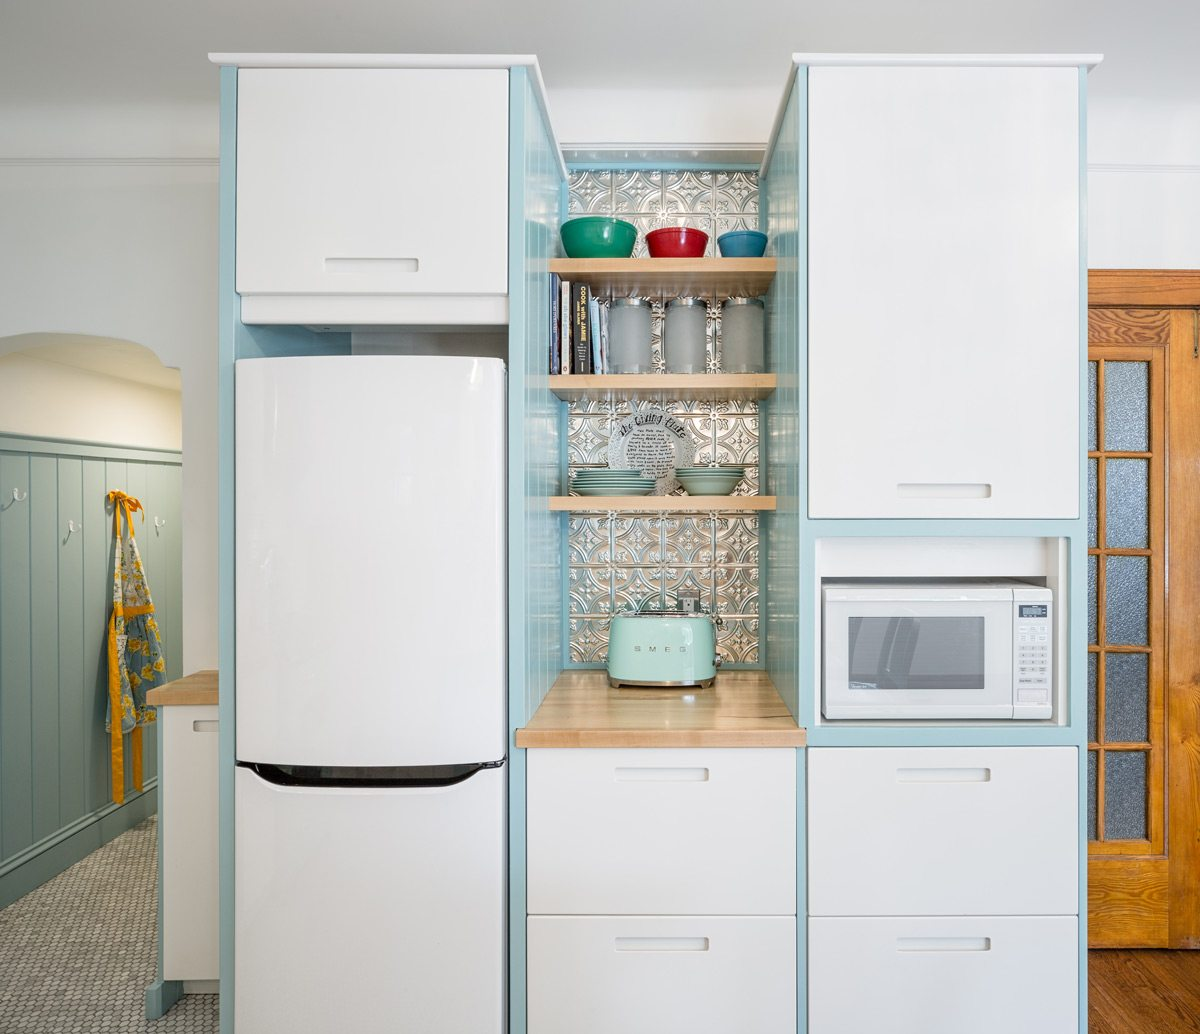 Painted a soft baby blue, beadboard frames the Ikea cabinetry, adding personality and a pop of colour. The custom maple shelves add a warm element and match the counters. Photo: Justin Van Leeuwen